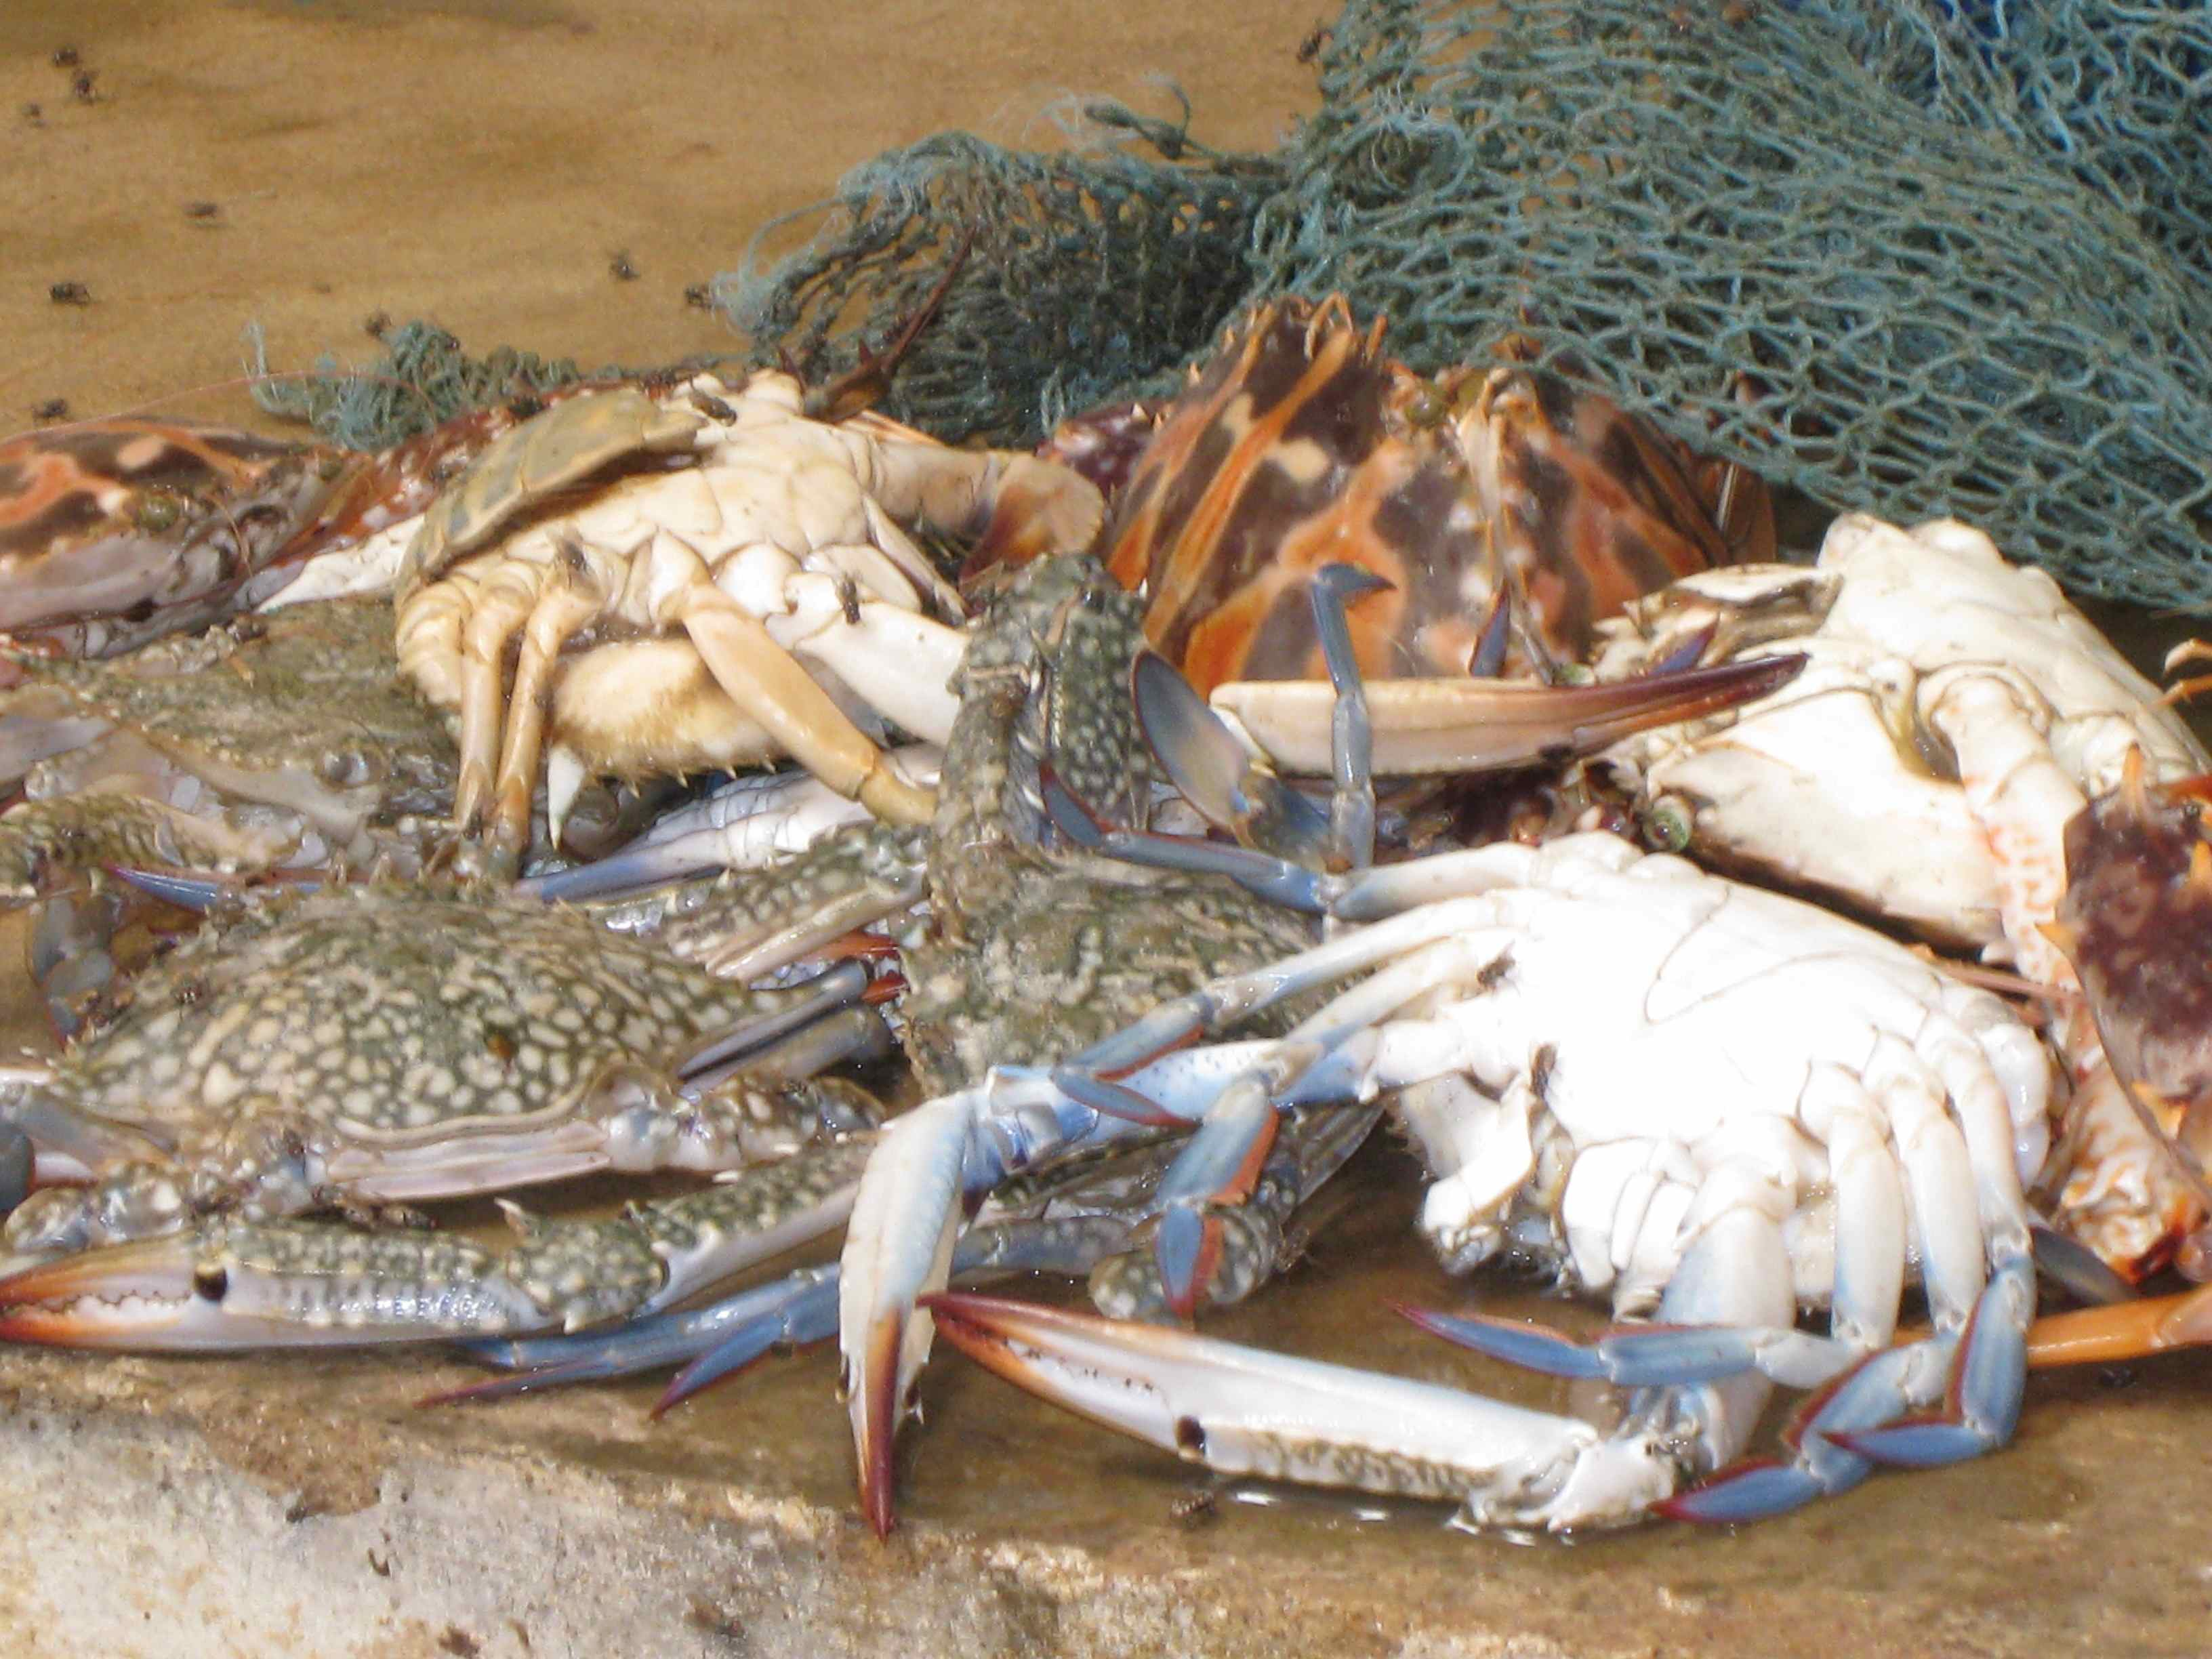 crabs-in-sadder-market-blog.jpg